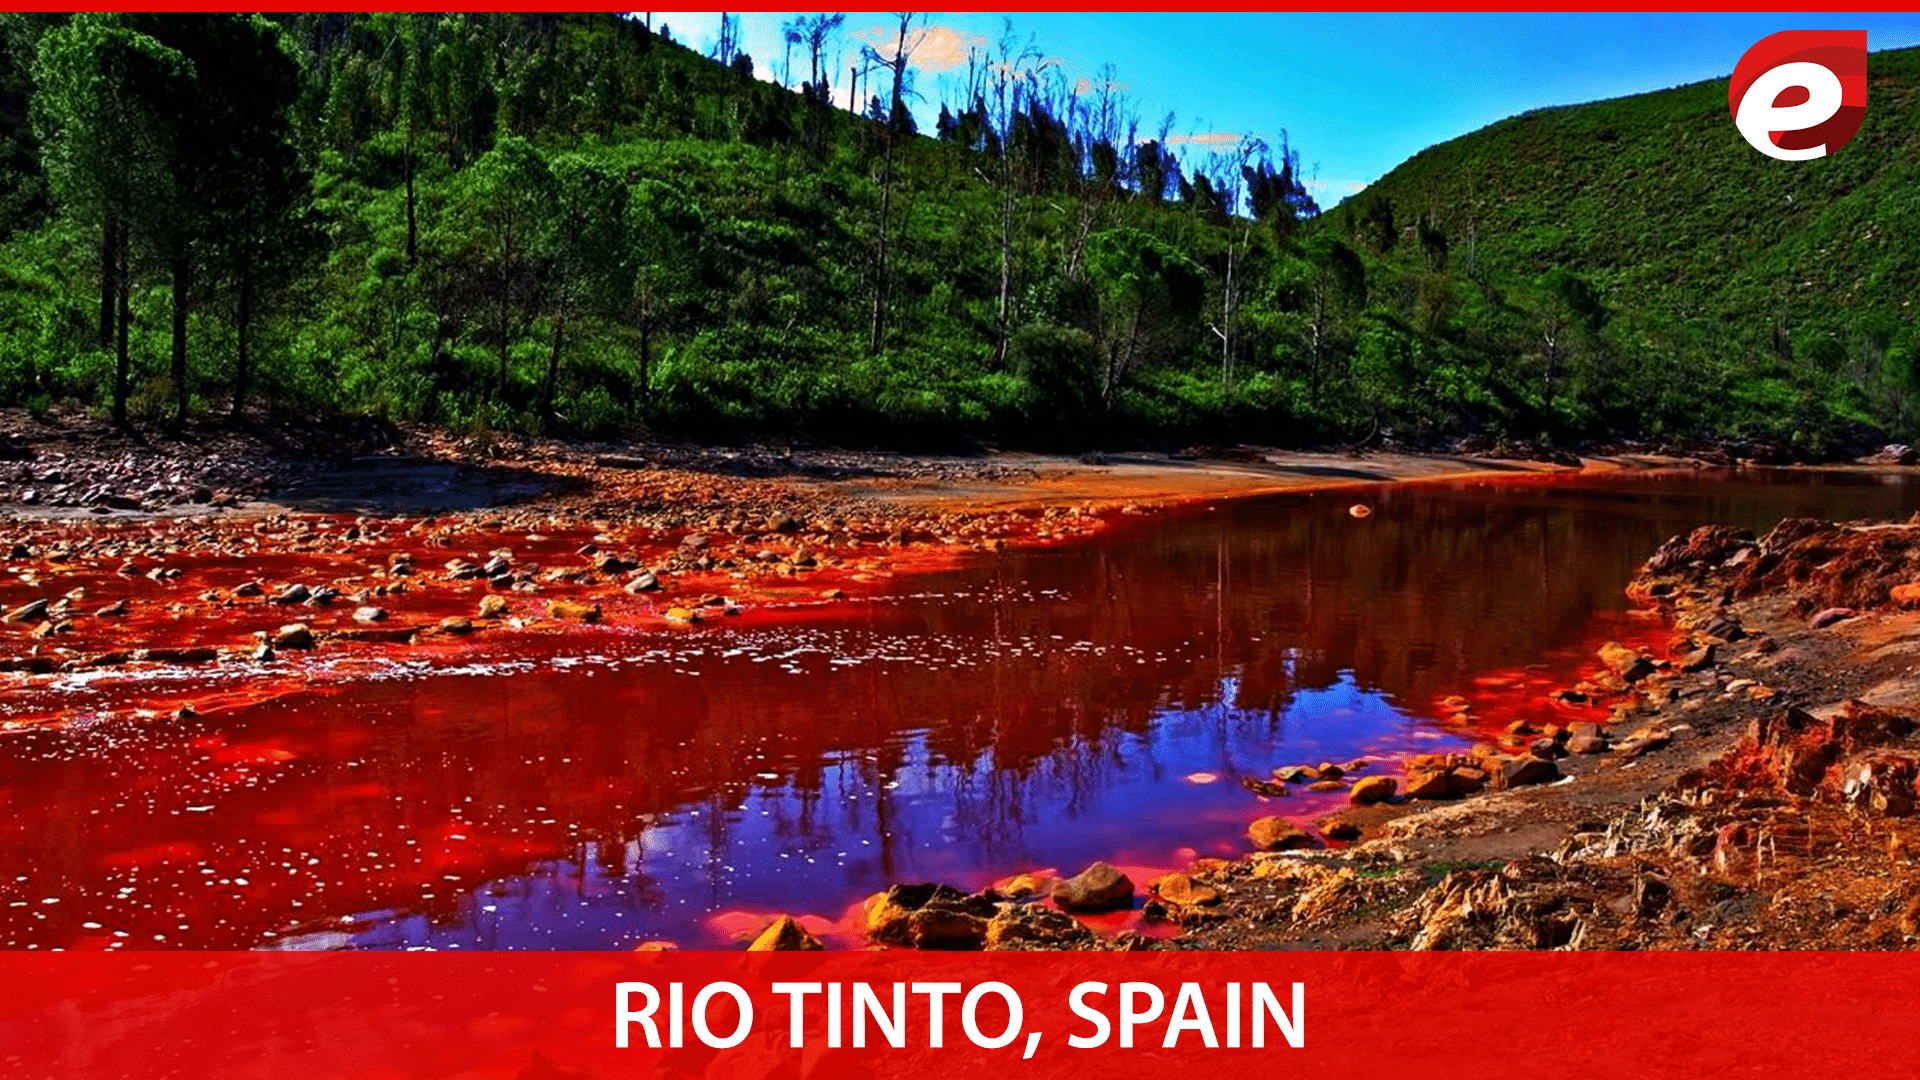 one of the most colorful places on earth-Rio Tinto